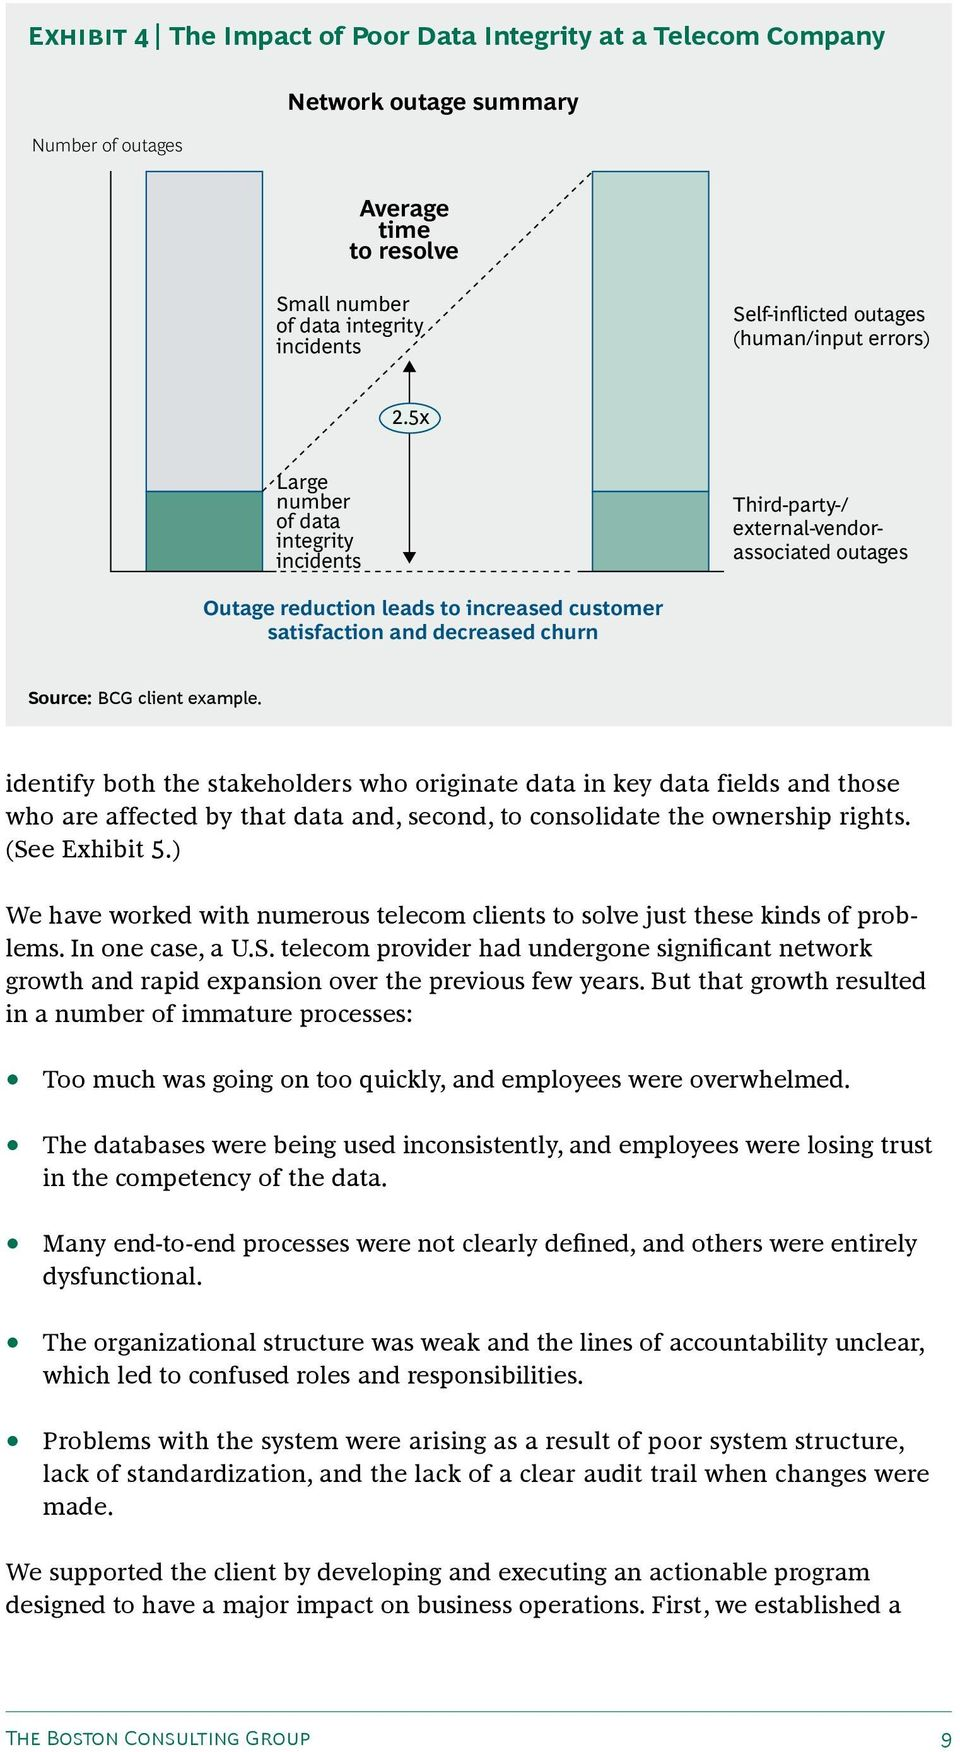 5x Large number of data integrity incidents Third-party-/ external-vendorassociated outages Outage reduction leads to increased customer satisfaction and decreased churn Source: BCG client example.